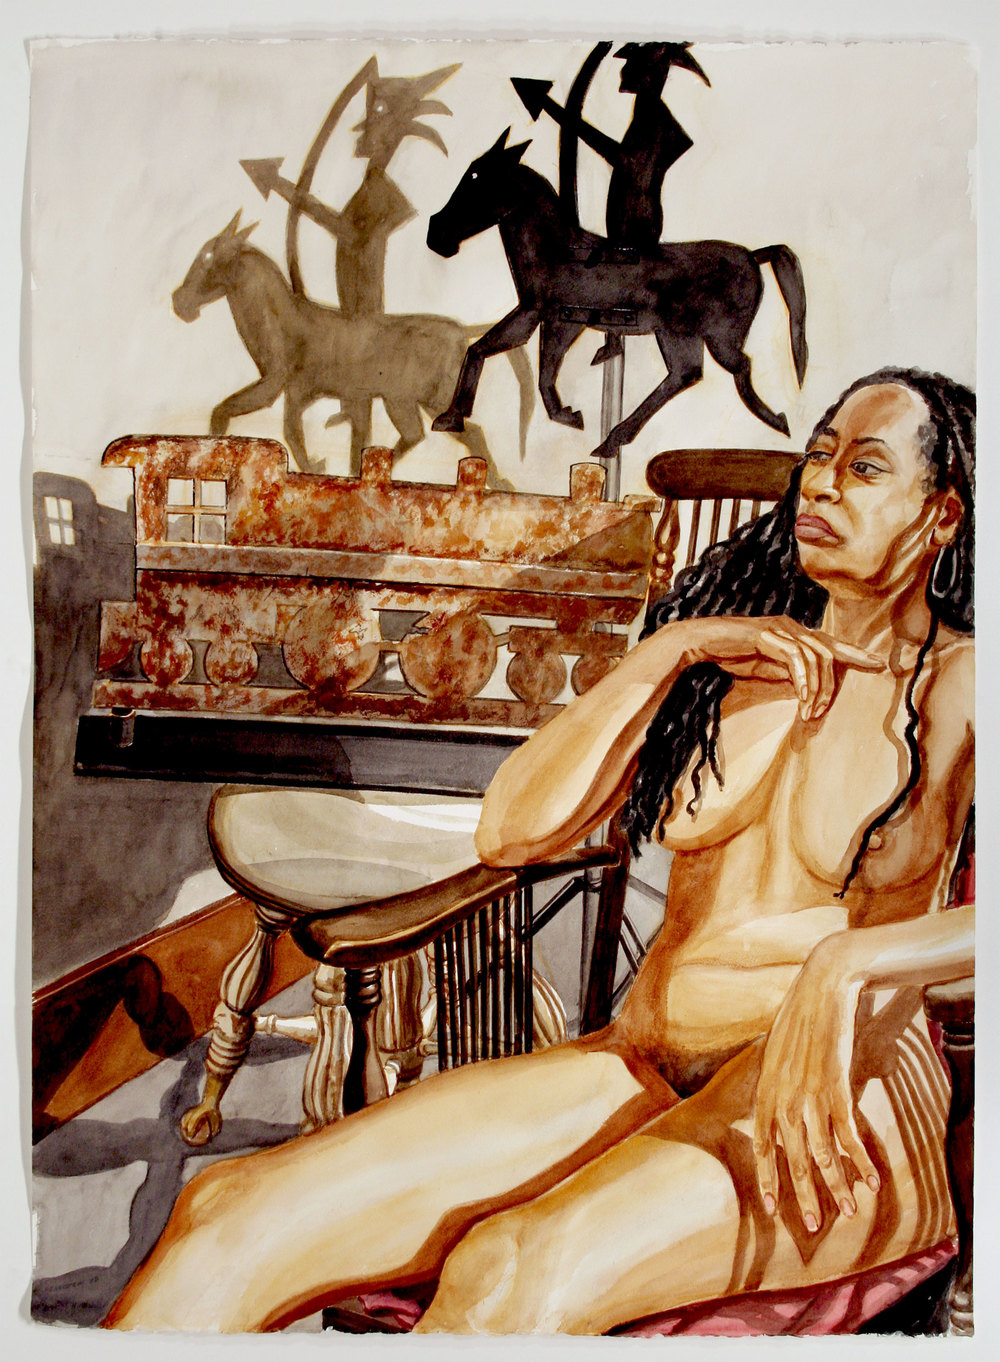 MODEL WITH LOCOMOTIVE AND AMERICAN INDIAN WEATHERVANES , 2007 Watercolor on paper 46 1/2 x 34 inches